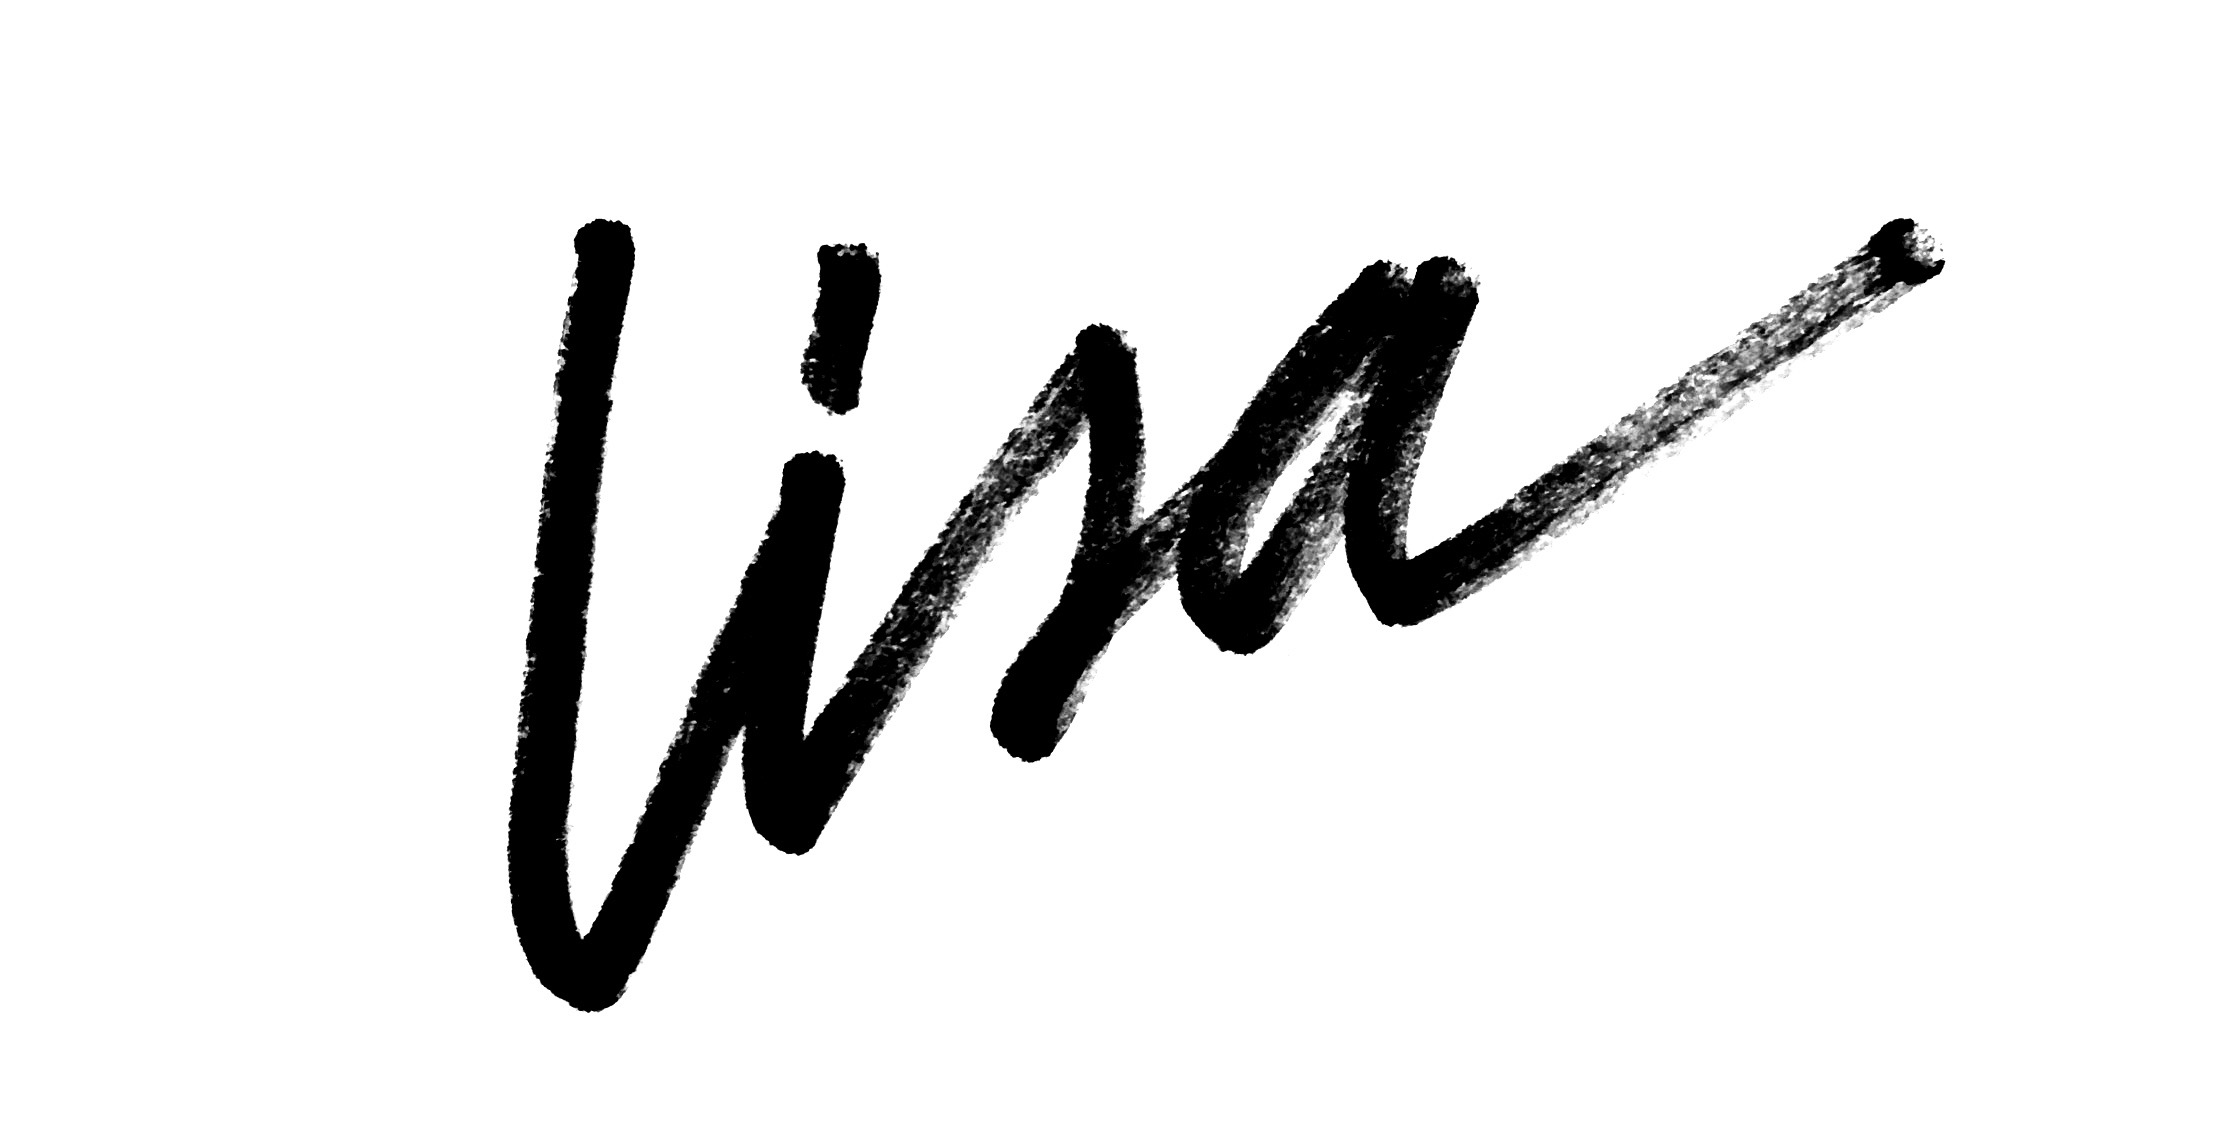 Lisa Carpenter's Signature